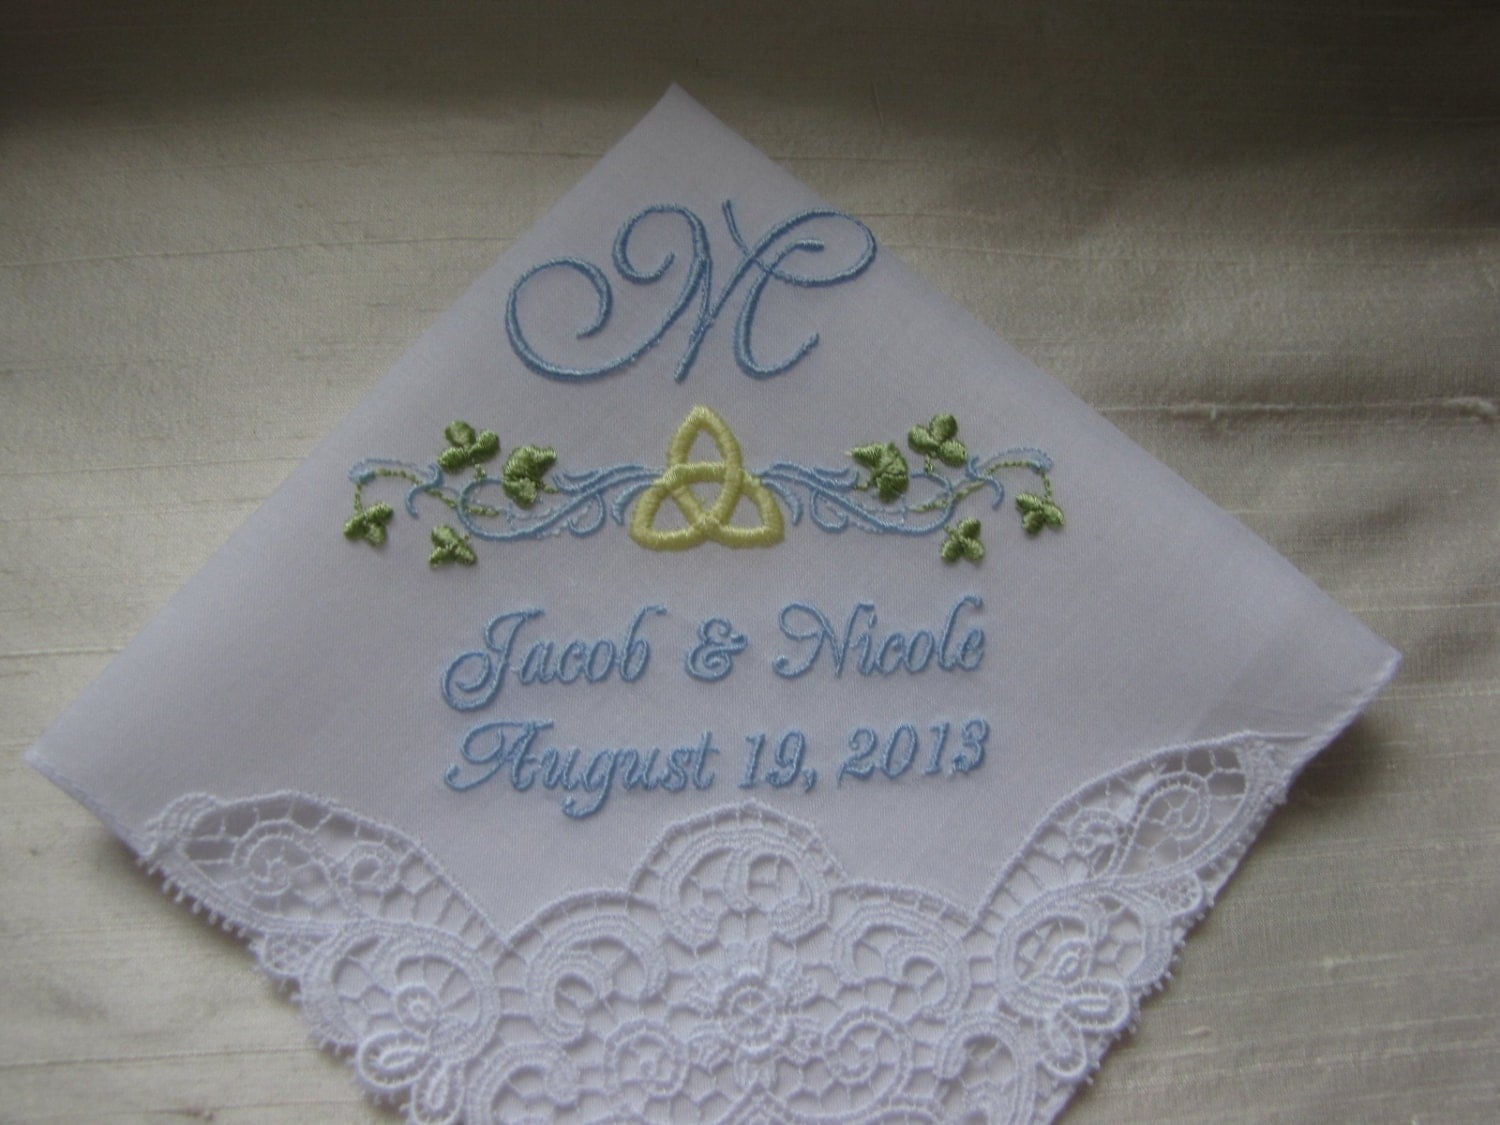 Wedding Gift Calculator The Knot : Celtic Monogrammed Wedding Handkerchief with Swiss lace trim